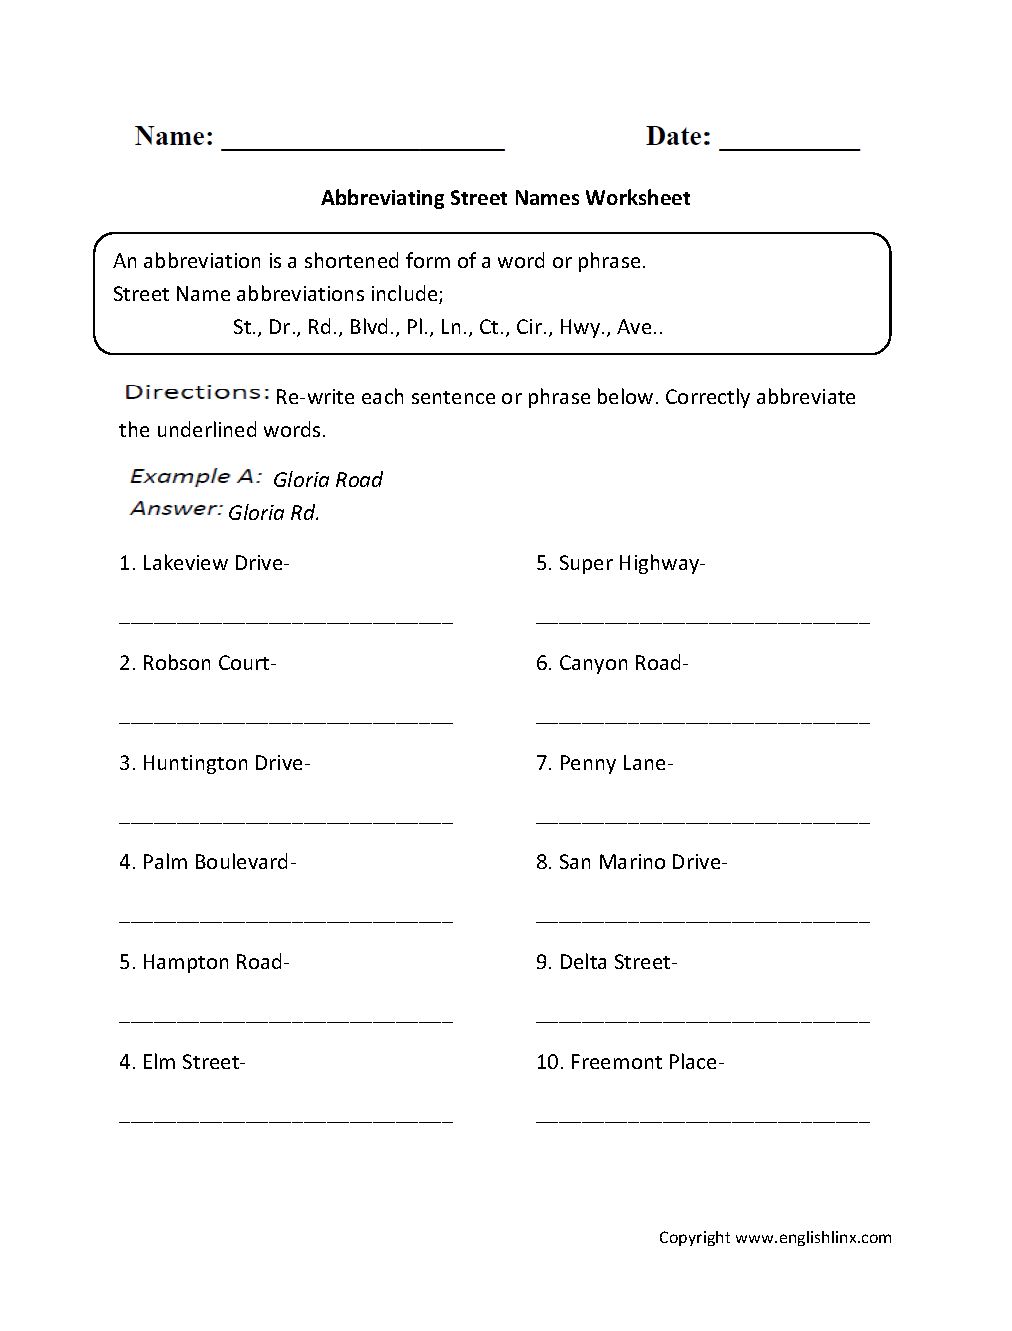 Worksheets Punctuating Titles Worksheet englishlinx com abbreviations worksheets grades 6 8 worksheets